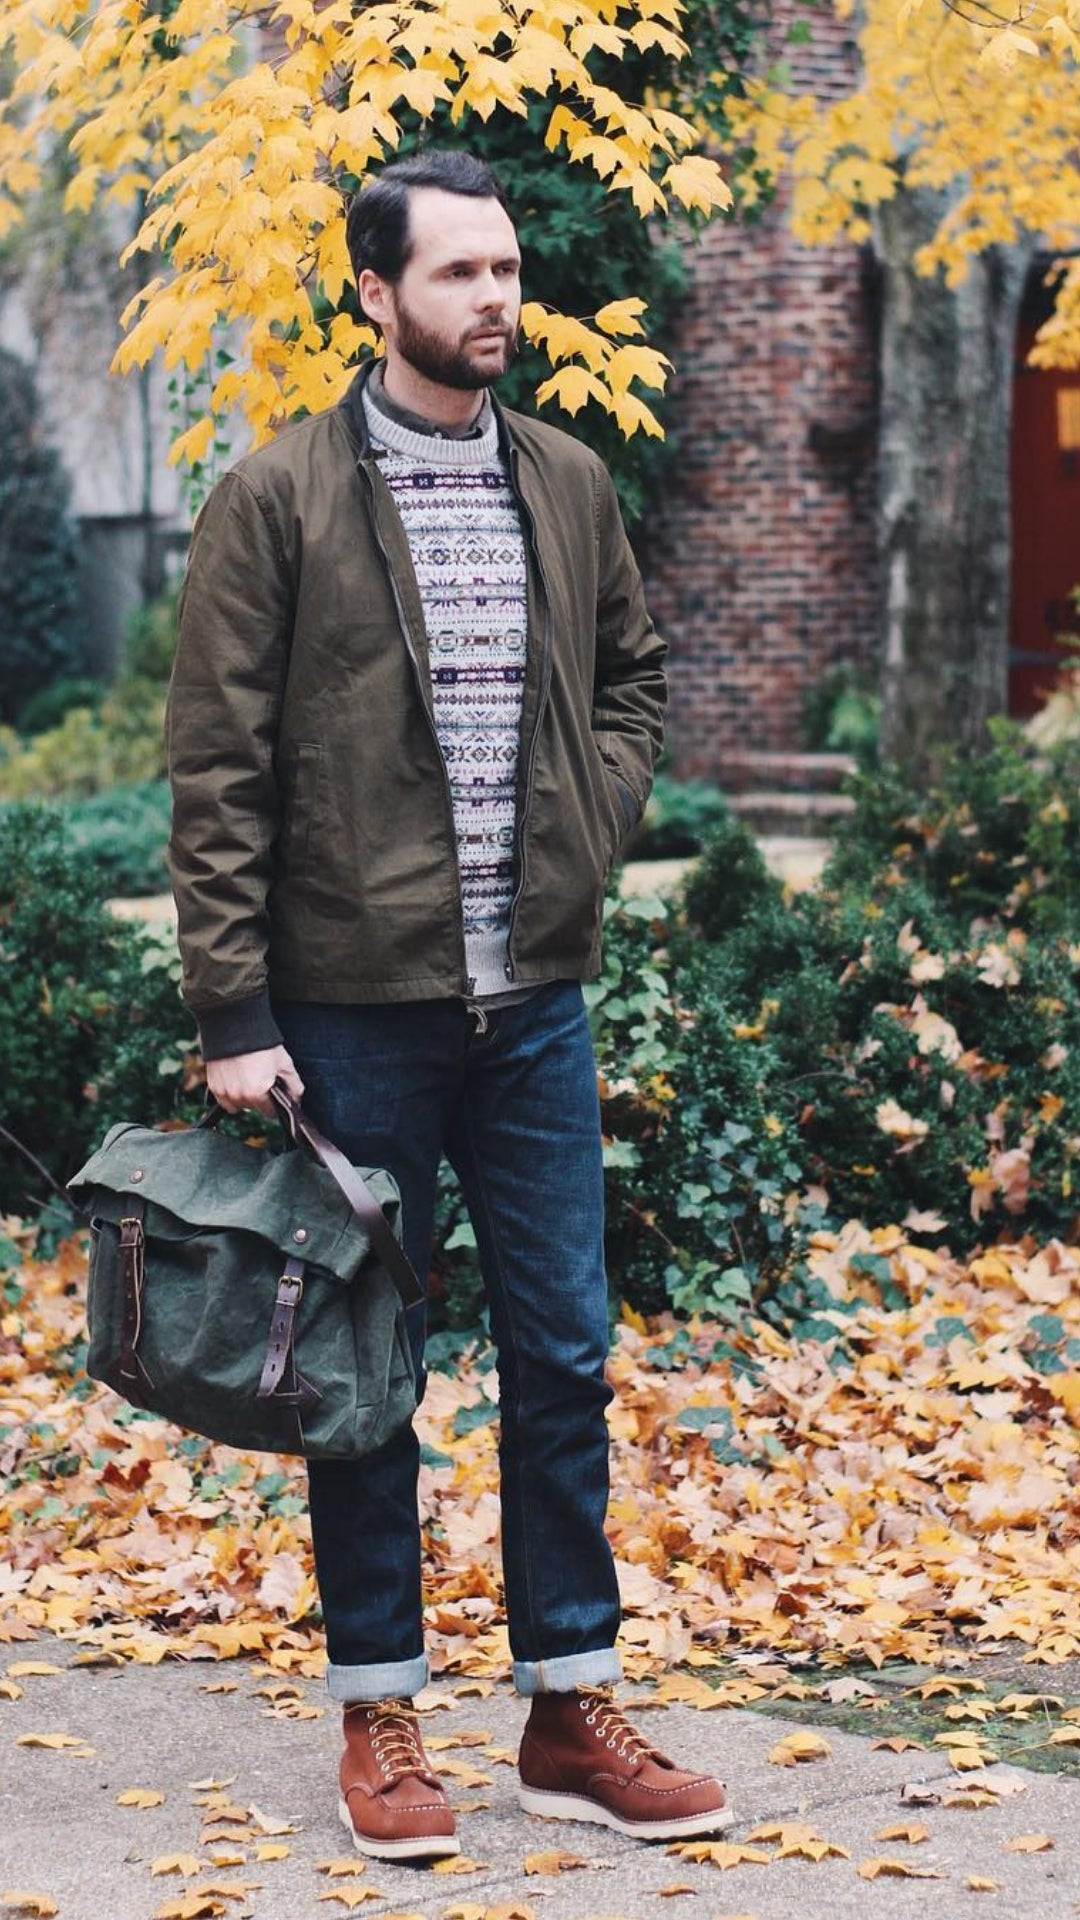 5 Everyday Fall Outfits For Guys #falloutfits #fallfashion #mensfashion #streetstyle